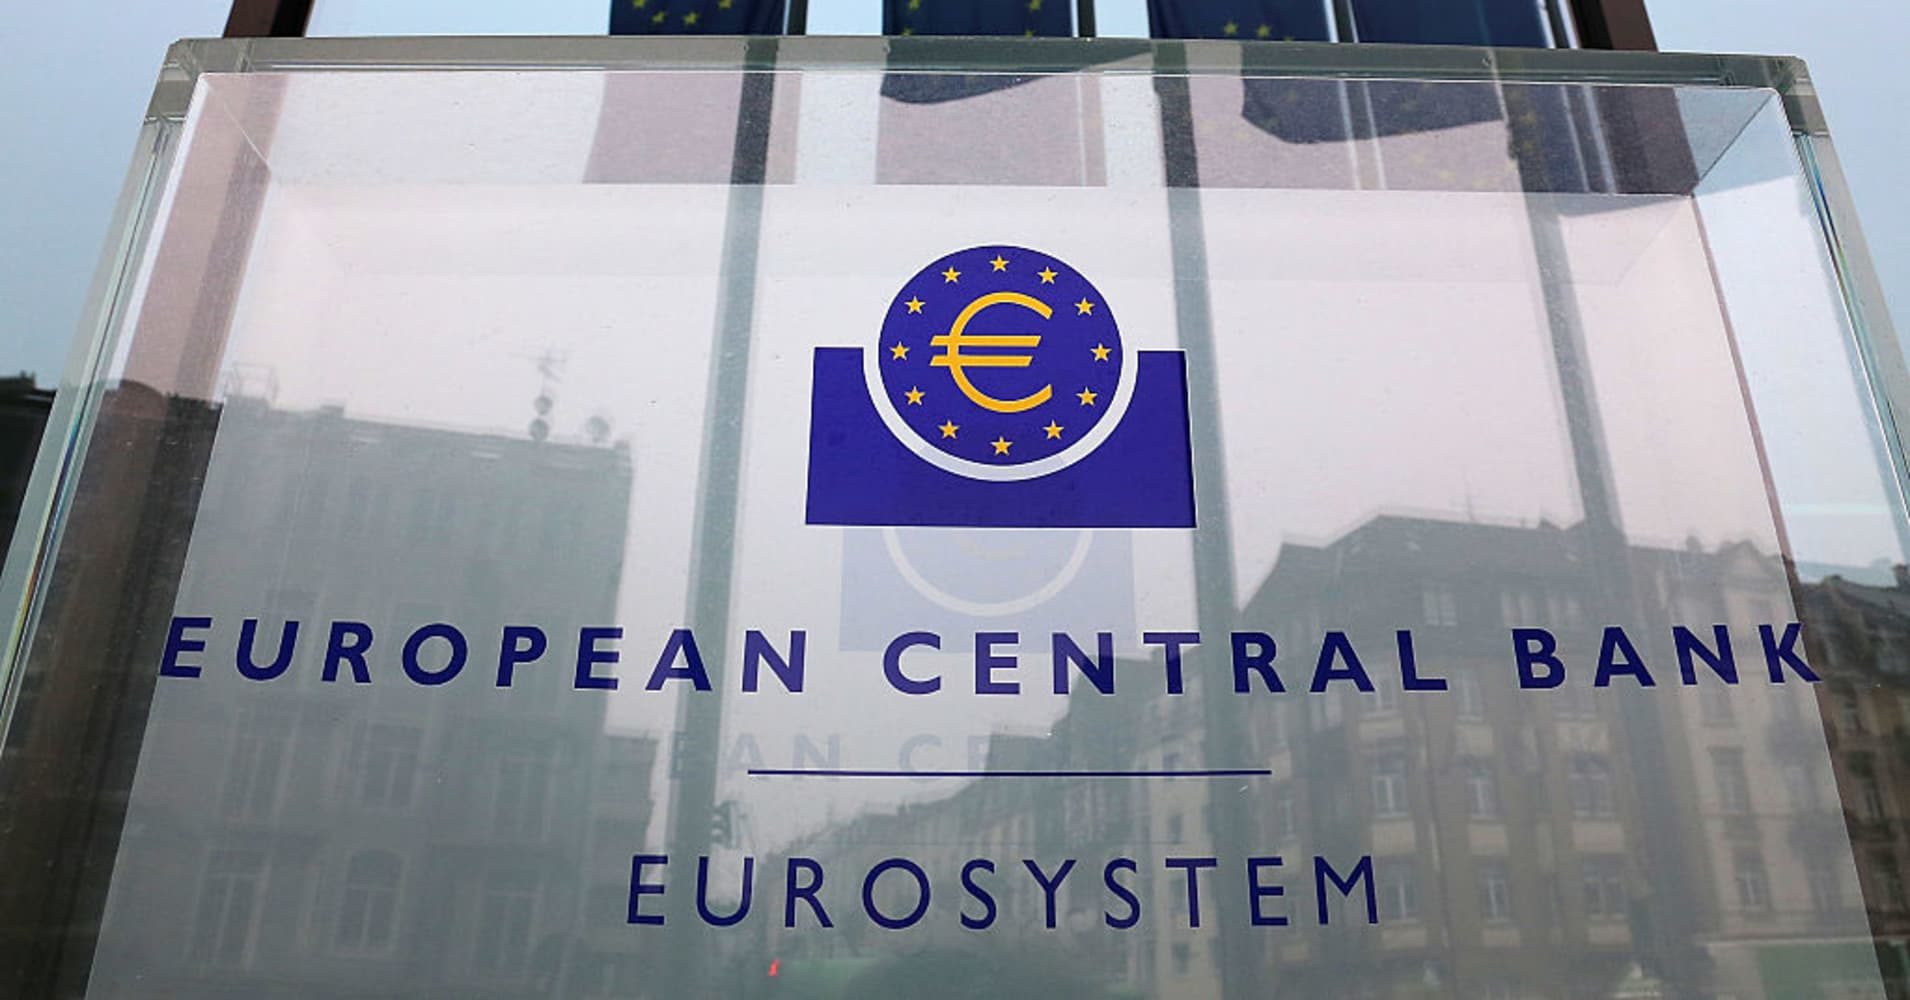 The current threat of a slowdown is not enough to change our outlook, ECB member says